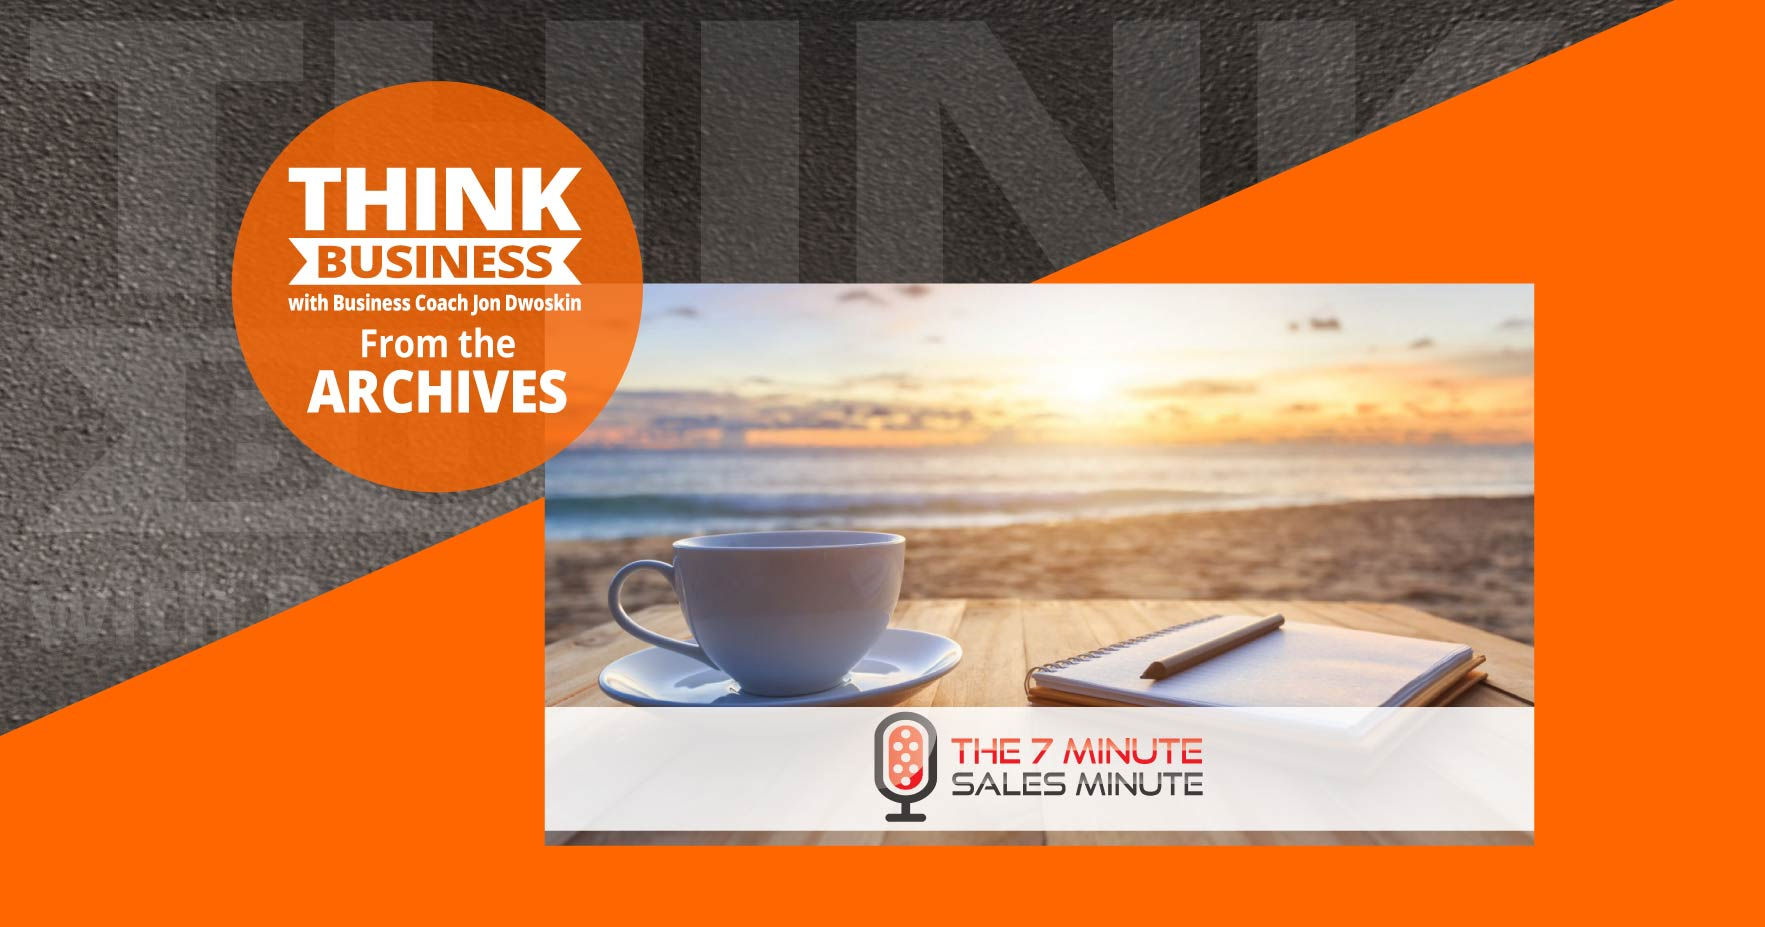 THINK Business Podcast: Daily Rituals to Create Productivity